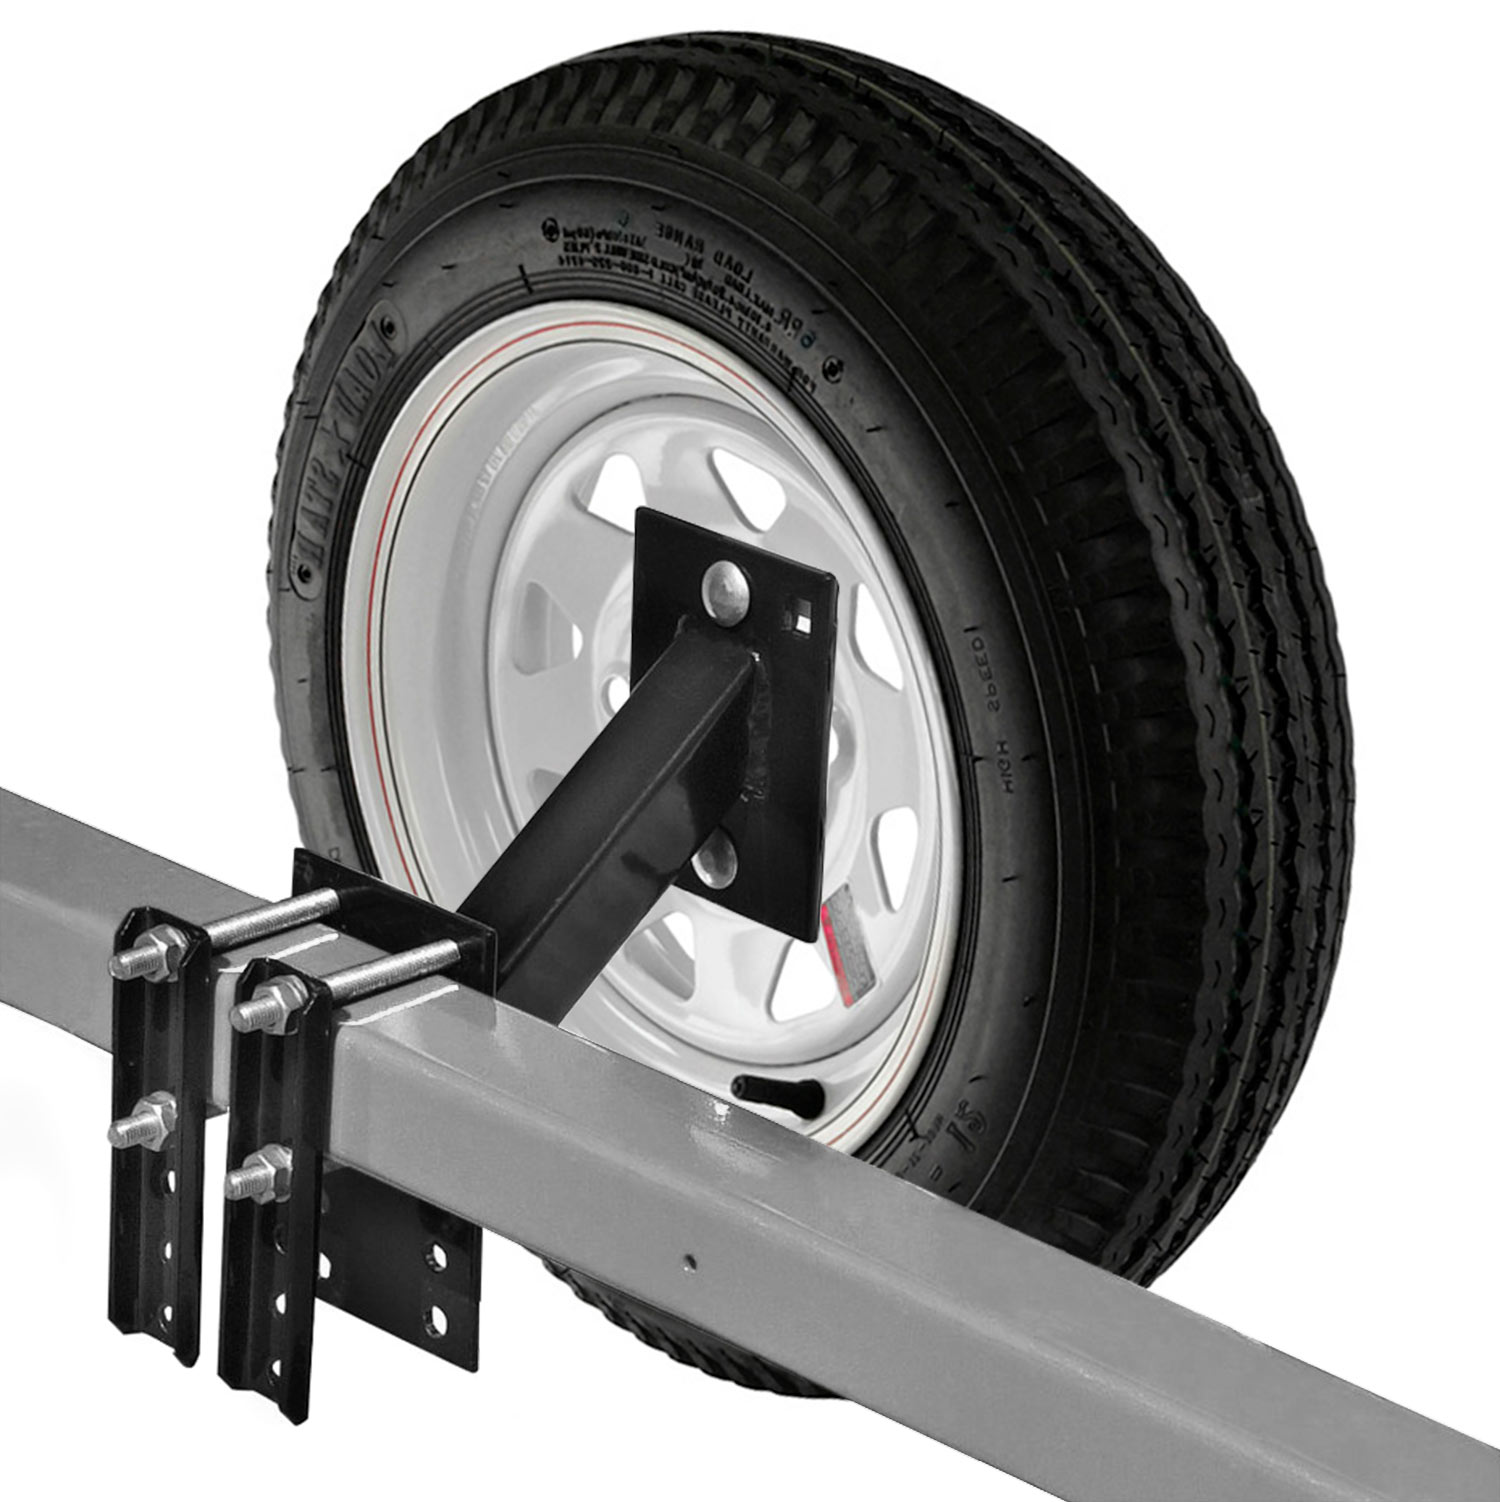 Biltek Spare Tire Carrier For Boat And Utility Trailer Spare Tire Mount Fits 4 Or 5 Lug Wheel No Drill Bracket Walmart Canada